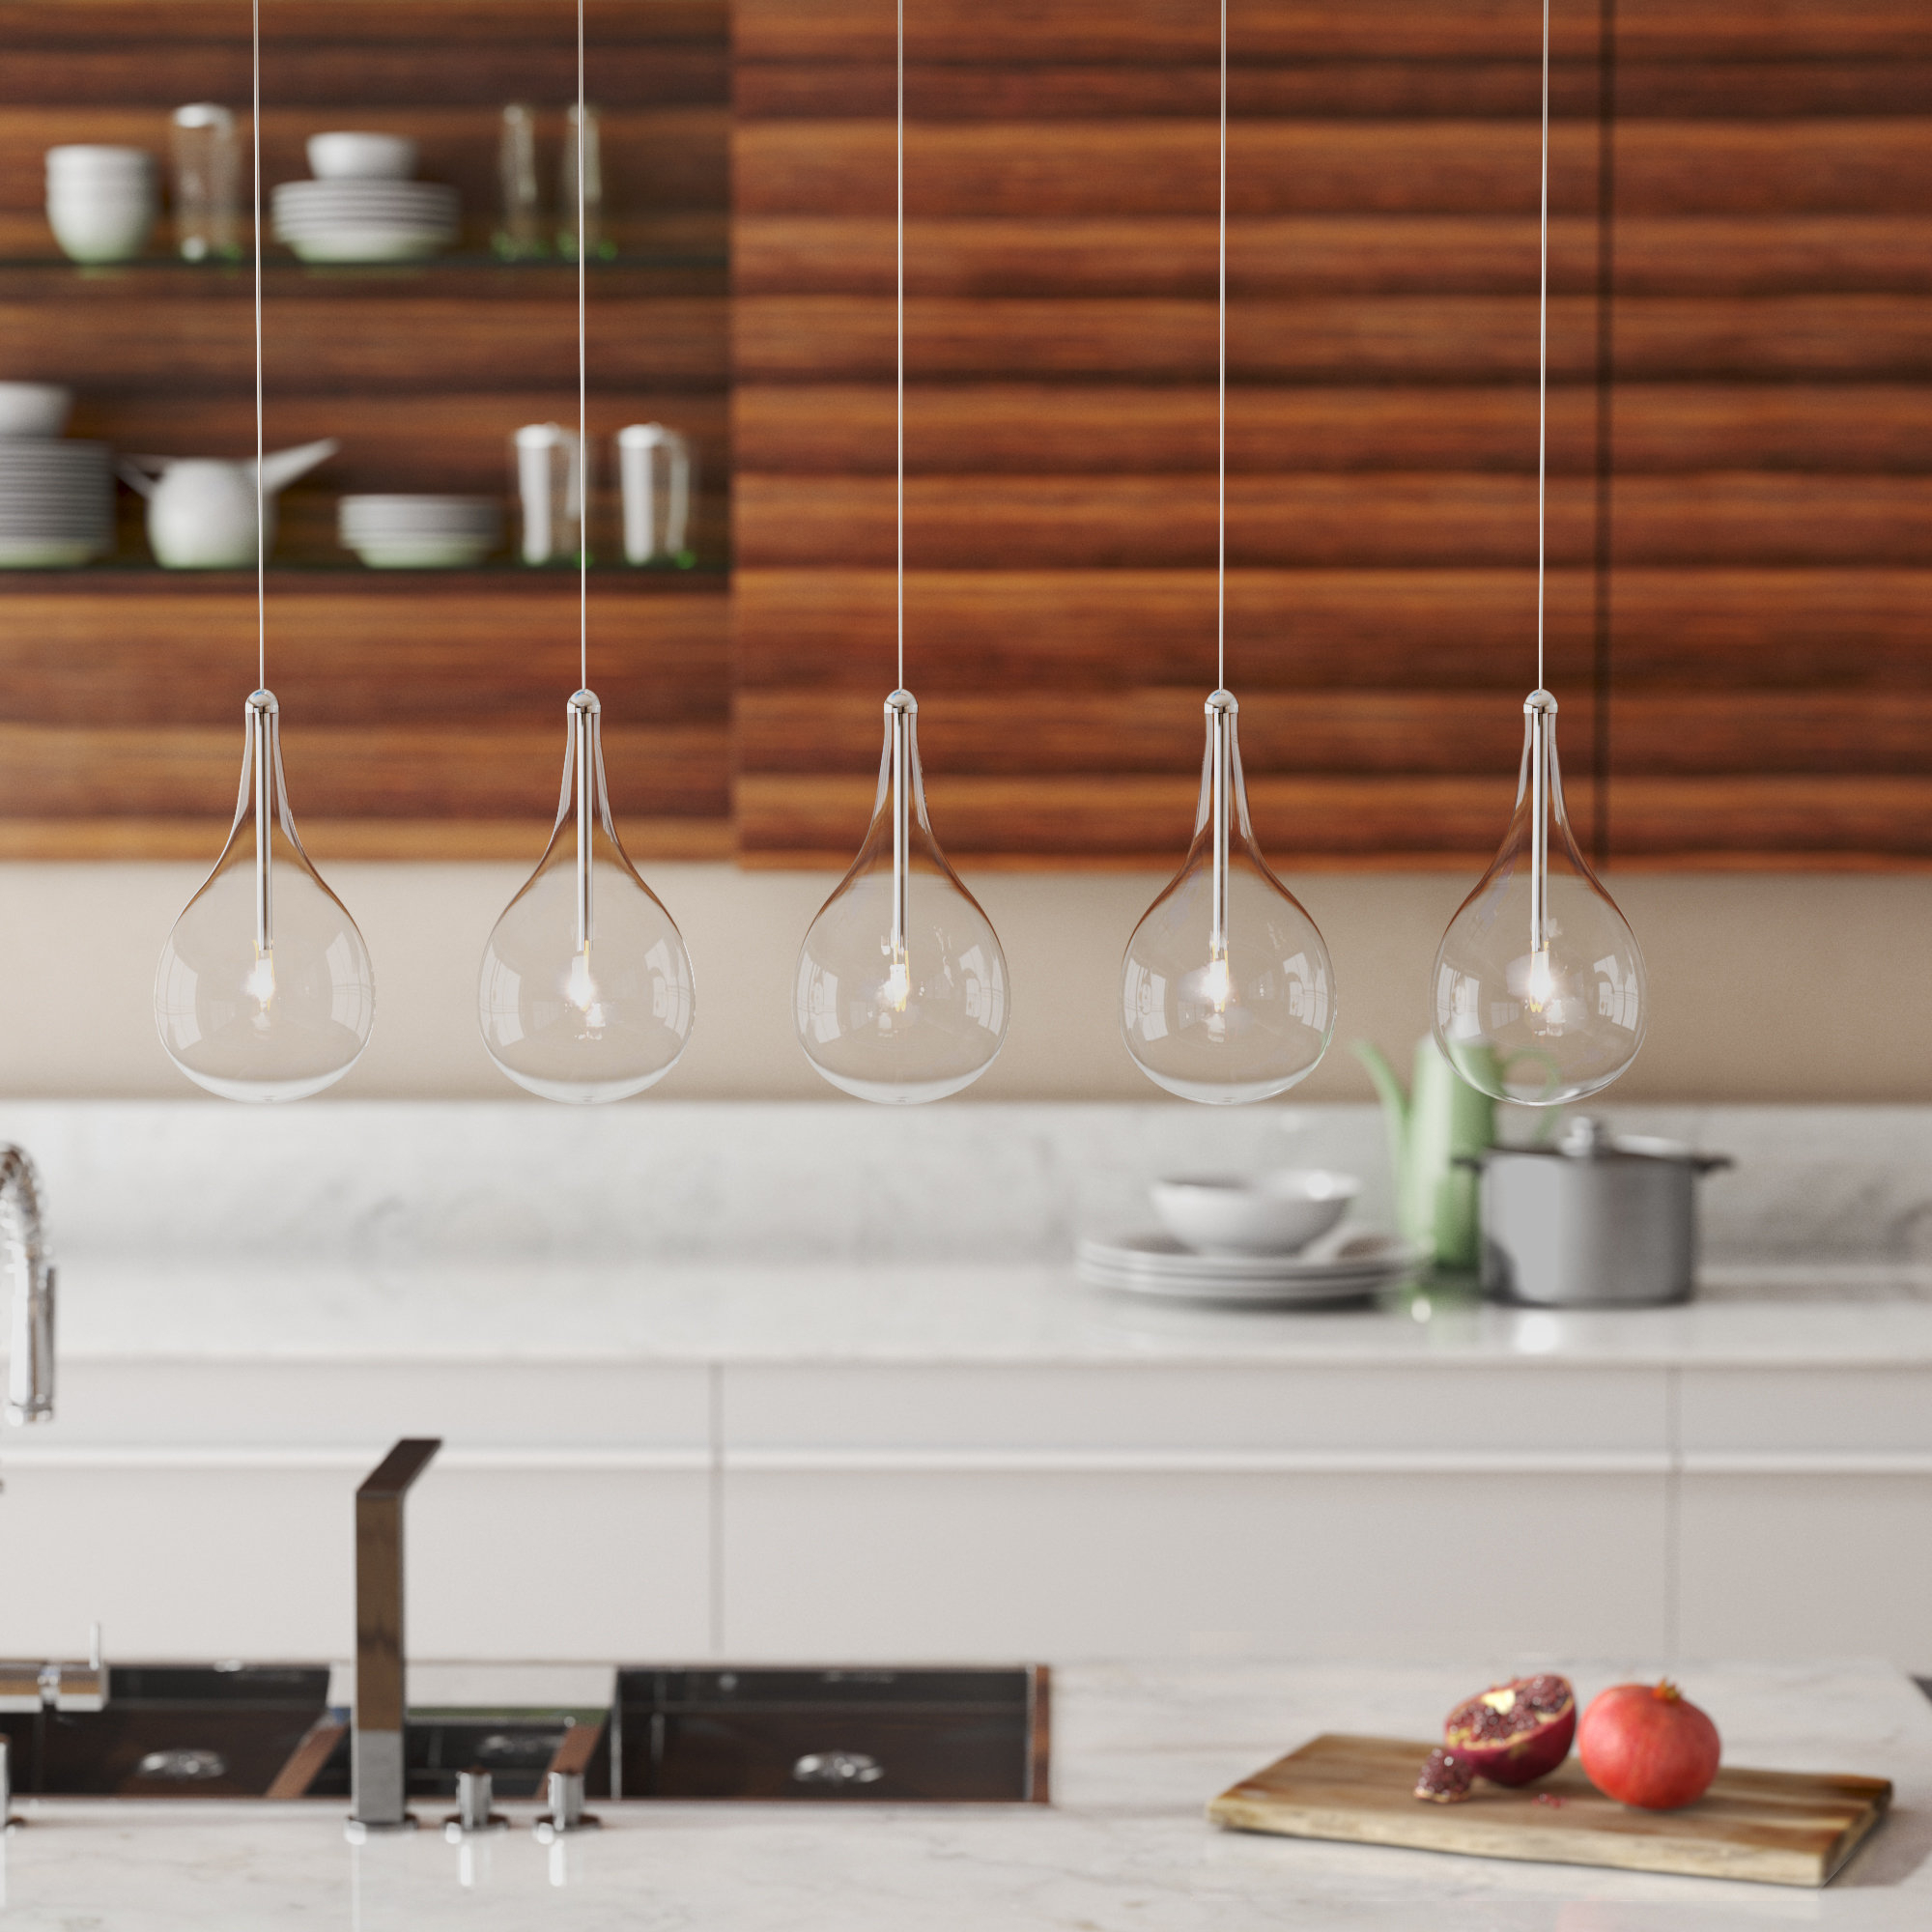 Neal 5 Light Kitchen Island Teardrop Pendant With Well Known Neal 5 Light Kitchen Island Teardrop Pendants (View 8 of 20)